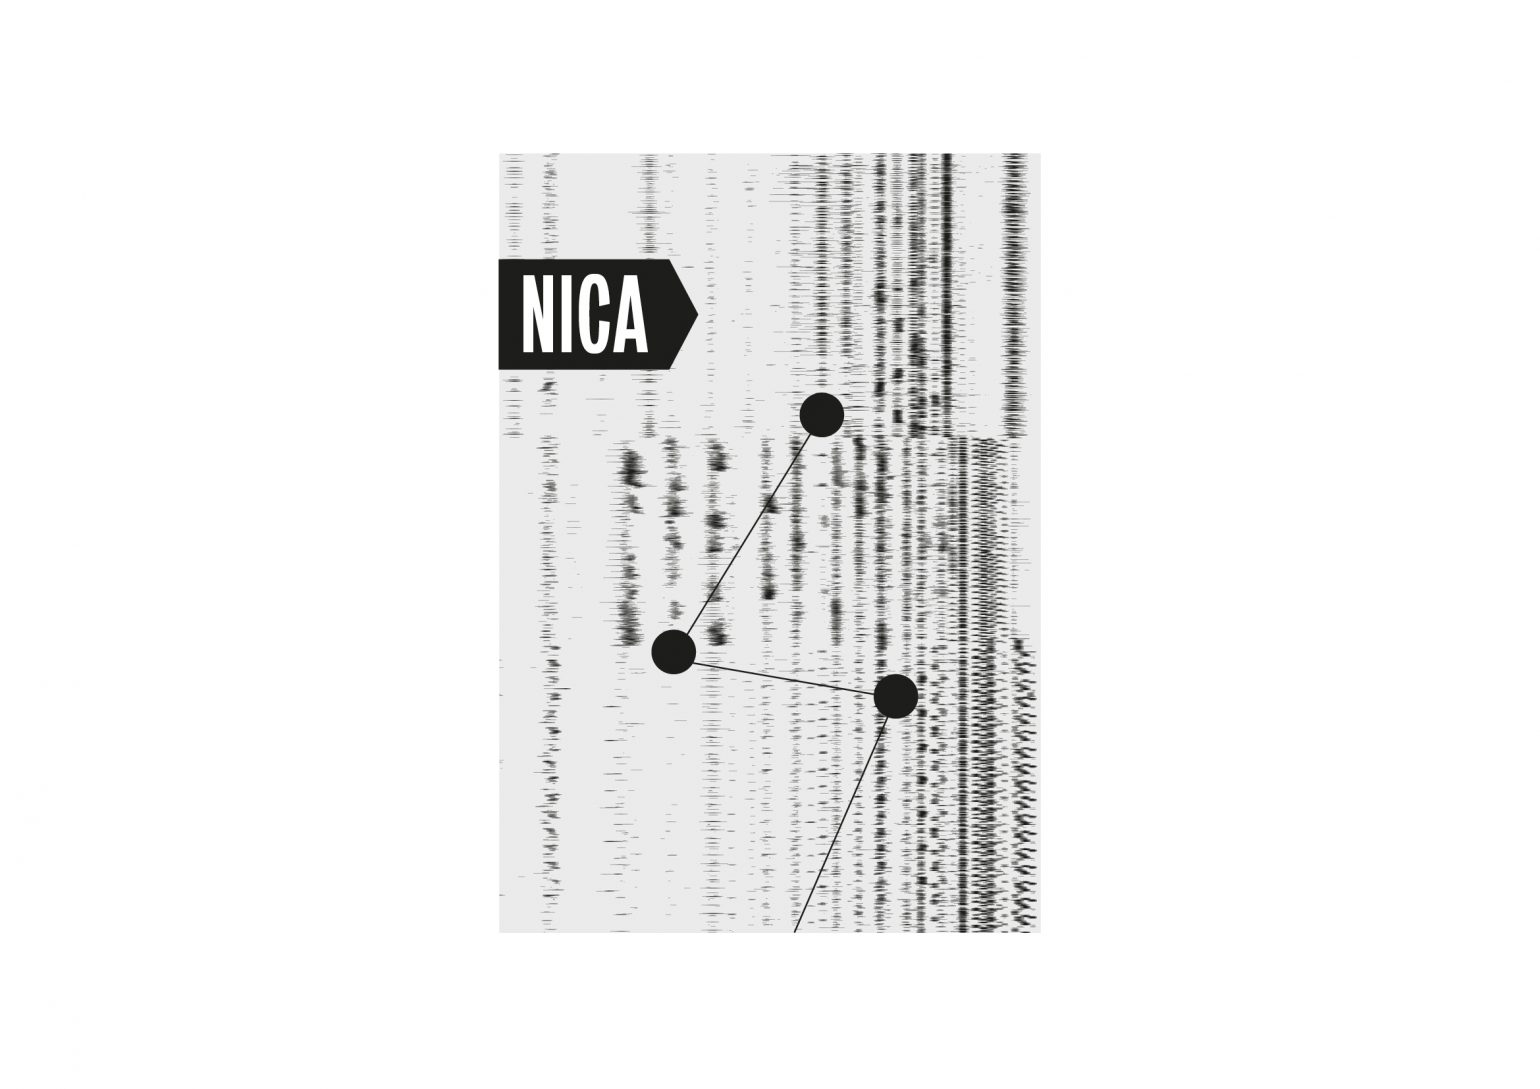 Nica_Design_Drafts_ChristianSchaefer2